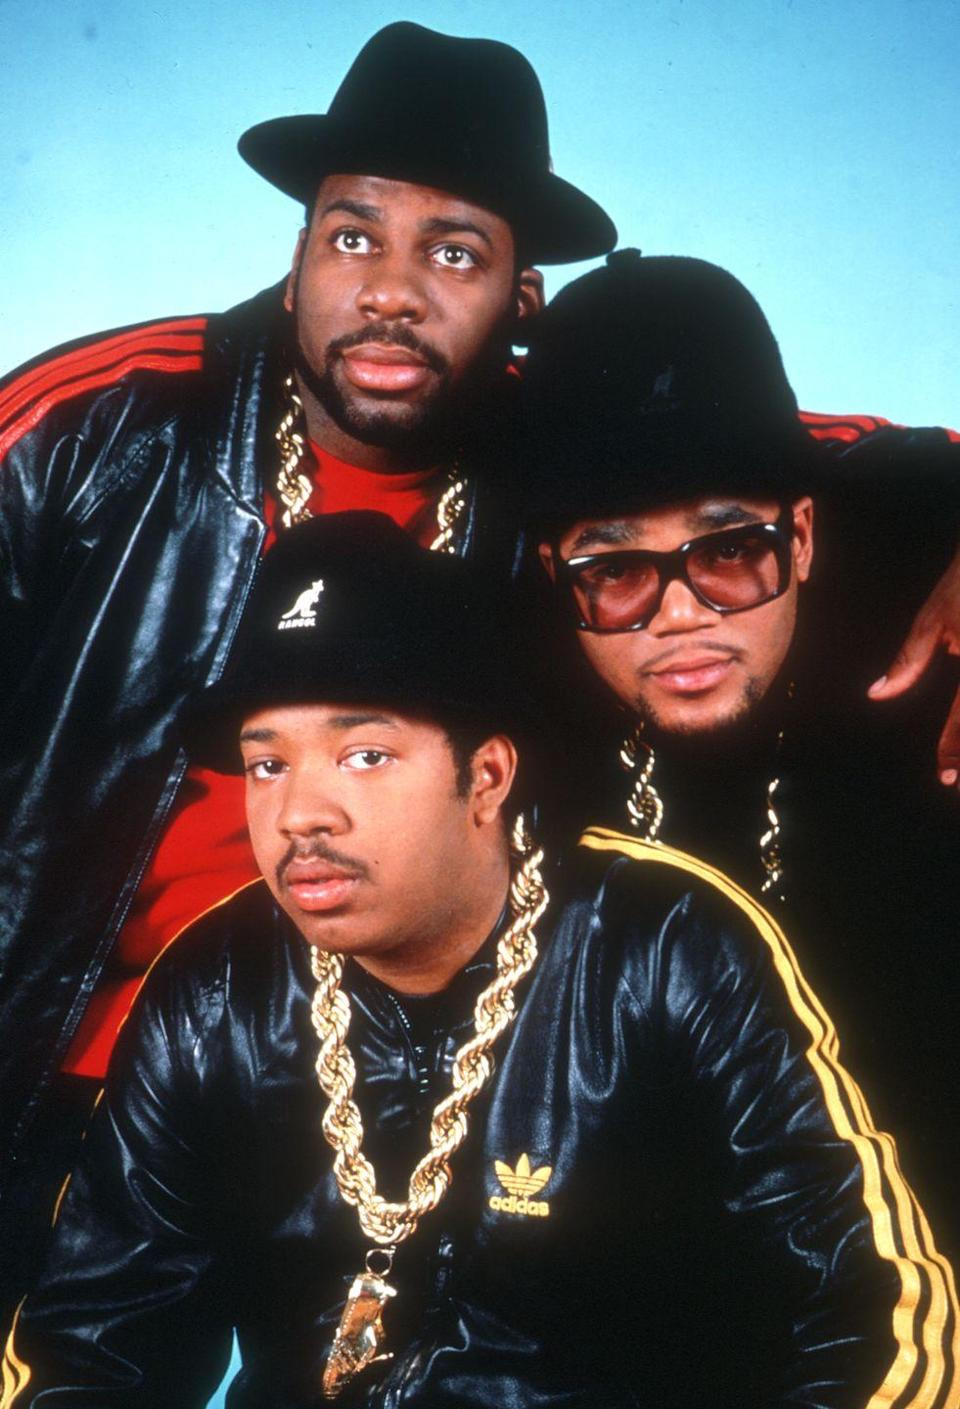 """<p>When it comes to hip-hop Christmas songs, nothing comes close to Run DMC's ode to spending the holiday in Queens and having a chance run-in with Santa Claus</p><p><a class=""""link rapid-noclick-resp"""" href=""""https://www.amazon.com/Christmas-In-Hollis/dp/B001BIQJBO?tag=syn-yahoo-20&ascsubtag=%5Bartid%7C10055.g.2680%5Bsrc%7Cyahoo-us"""" rel=""""nofollow noopener"""" target=""""_blank"""" data-ylk=""""slk:AMAZON"""">AMAZON</a> <a class=""""link rapid-noclick-resp"""" href=""""https://go.redirectingat.com?id=74968X1596630&url=https%3A%2F%2Fmusic.apple.com%2Fus%2Falbum%2Ftougher-than-leather-expanded-edition%2F251085283&sref=https%3A%2F%2Fwww.goodhousekeeping.com%2Fholidays%2Fchristmas-ideas%2Fg2680%2Fchristmas-songs%2F"""" rel=""""nofollow noopener"""" target=""""_blank"""" data-ylk=""""slk:ITUNES"""">ITUNES</a></p>"""